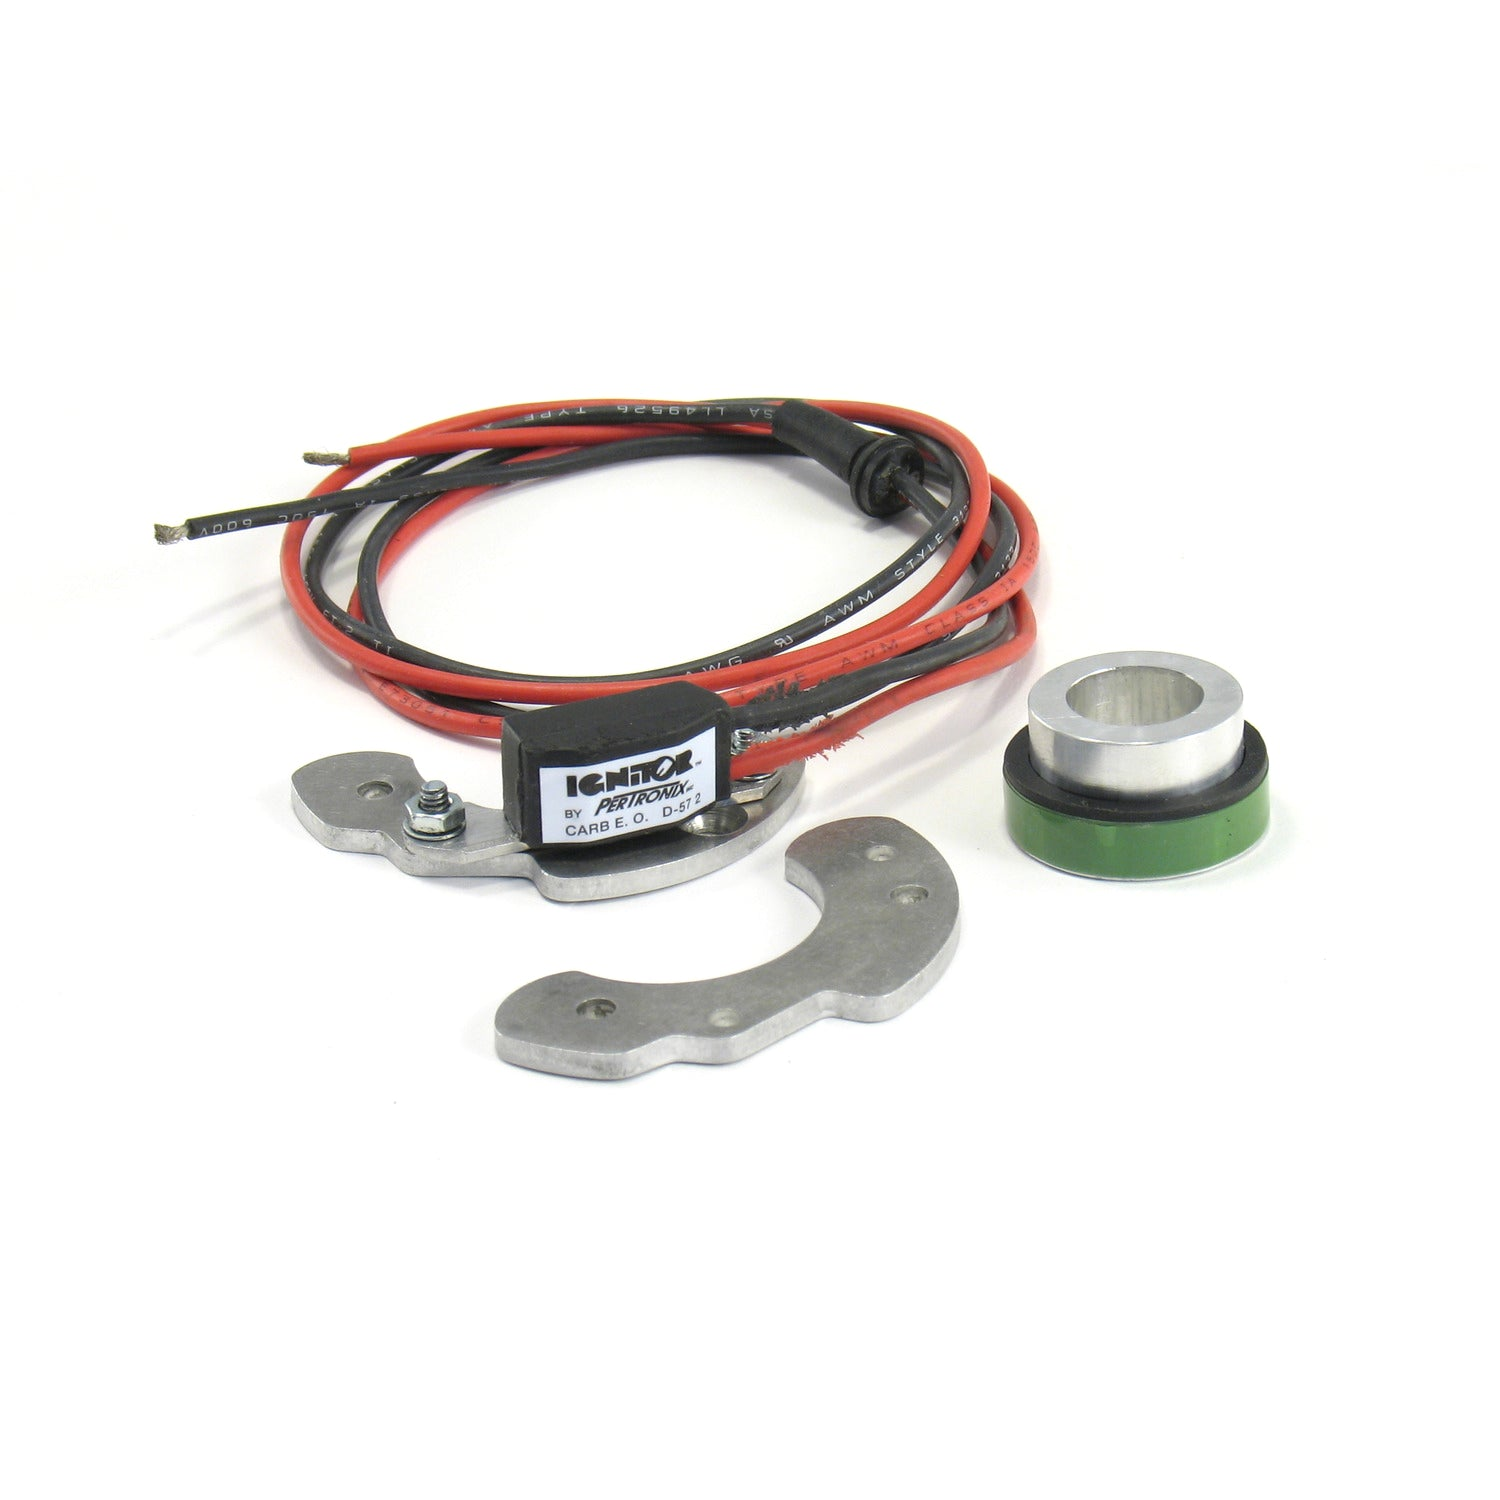 PerTronix 1249 Ignitor Ford 4 cyl